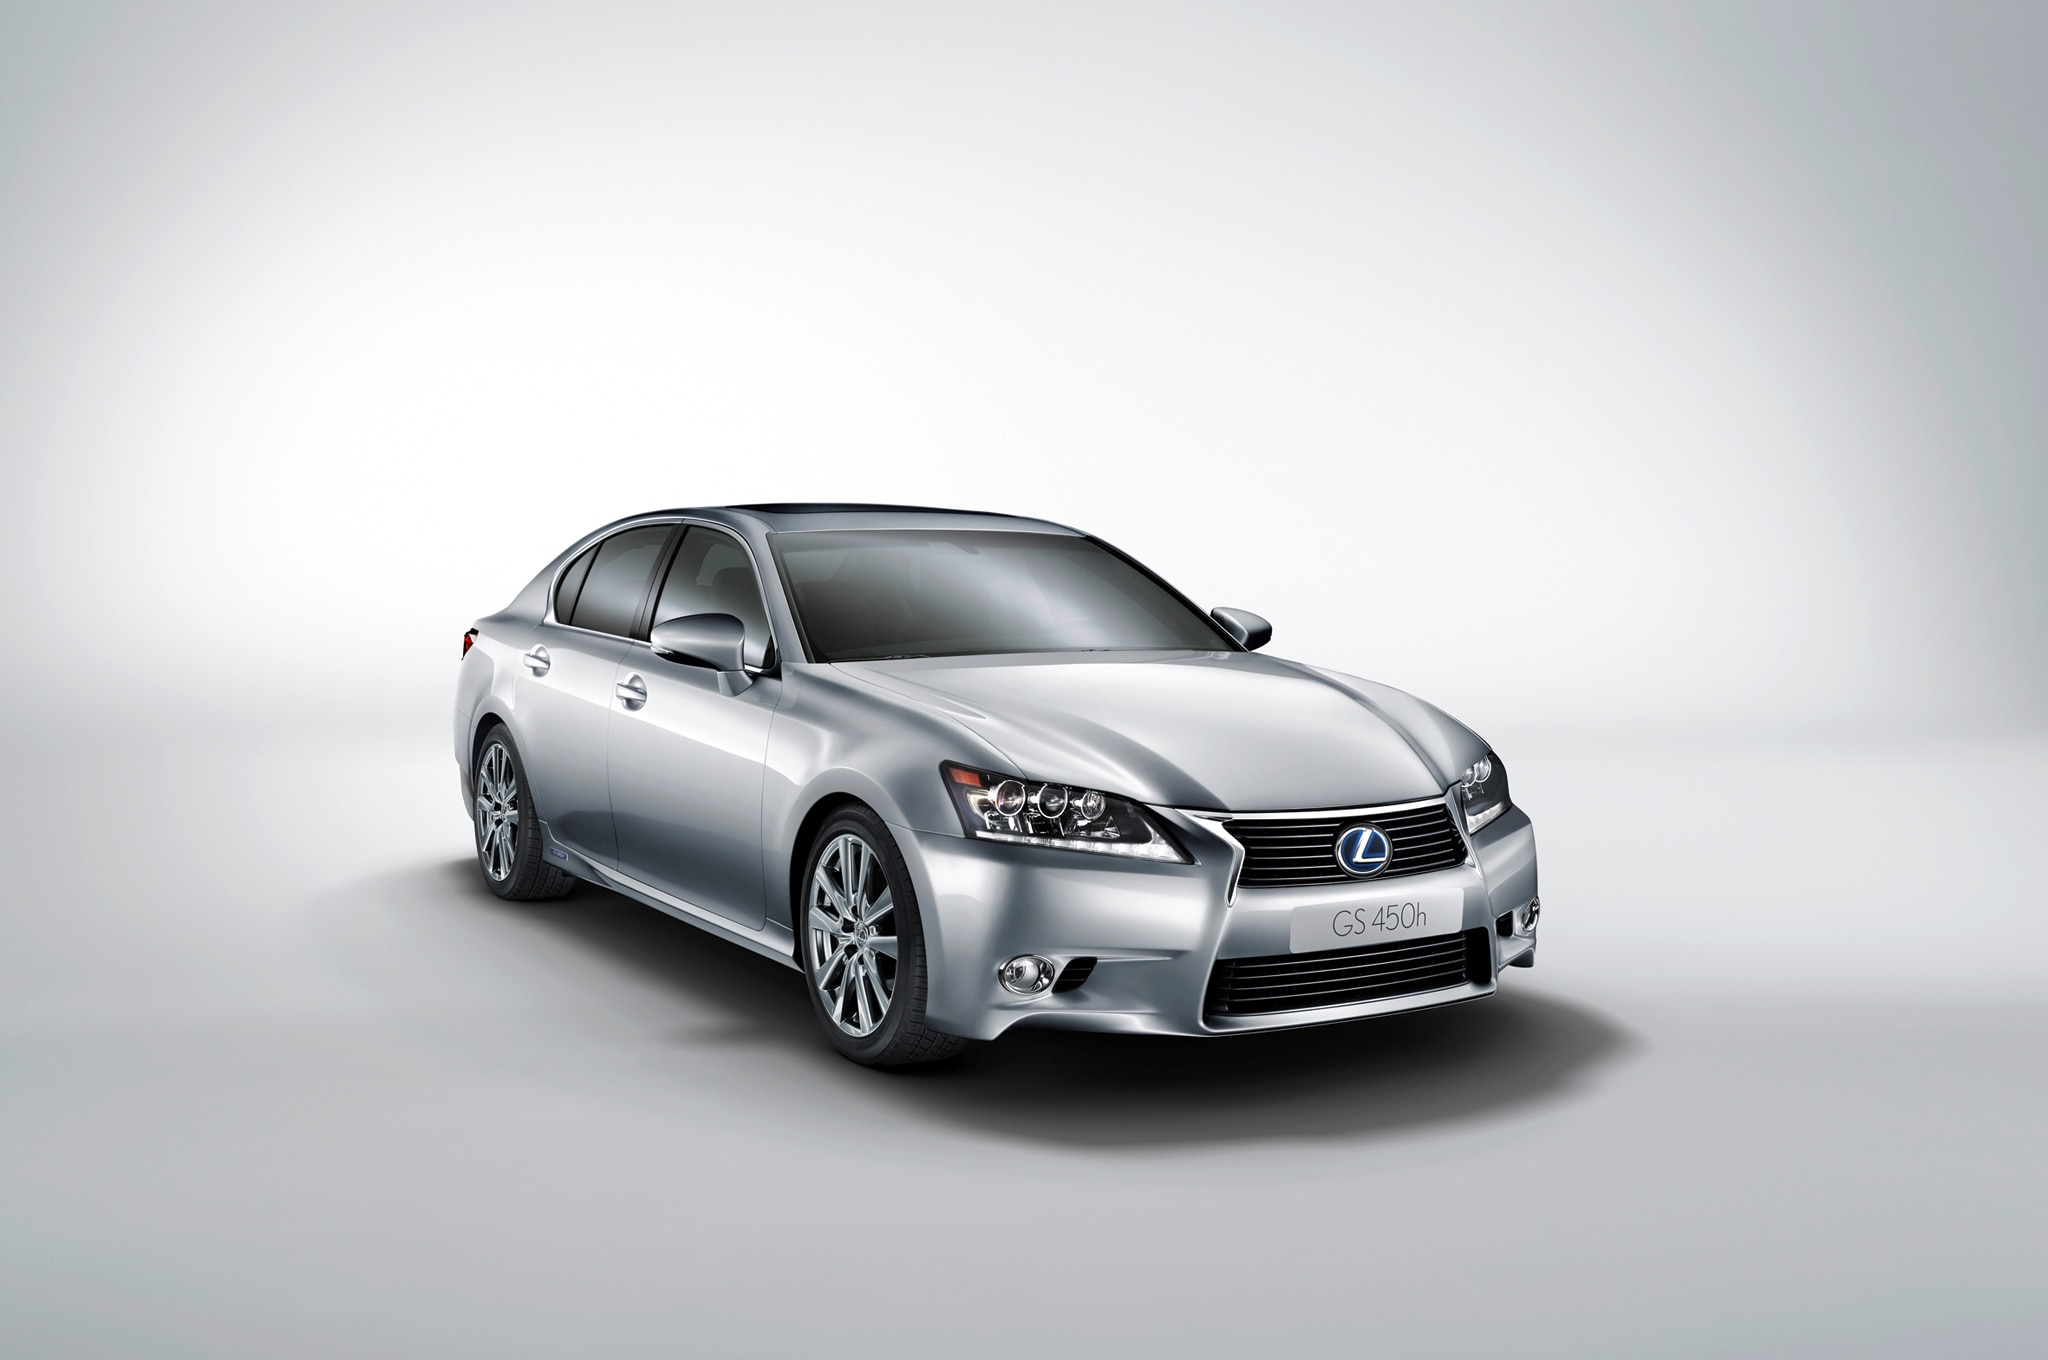 First Look 2013 Lexus GS450h Hybrid Automobile Magazine